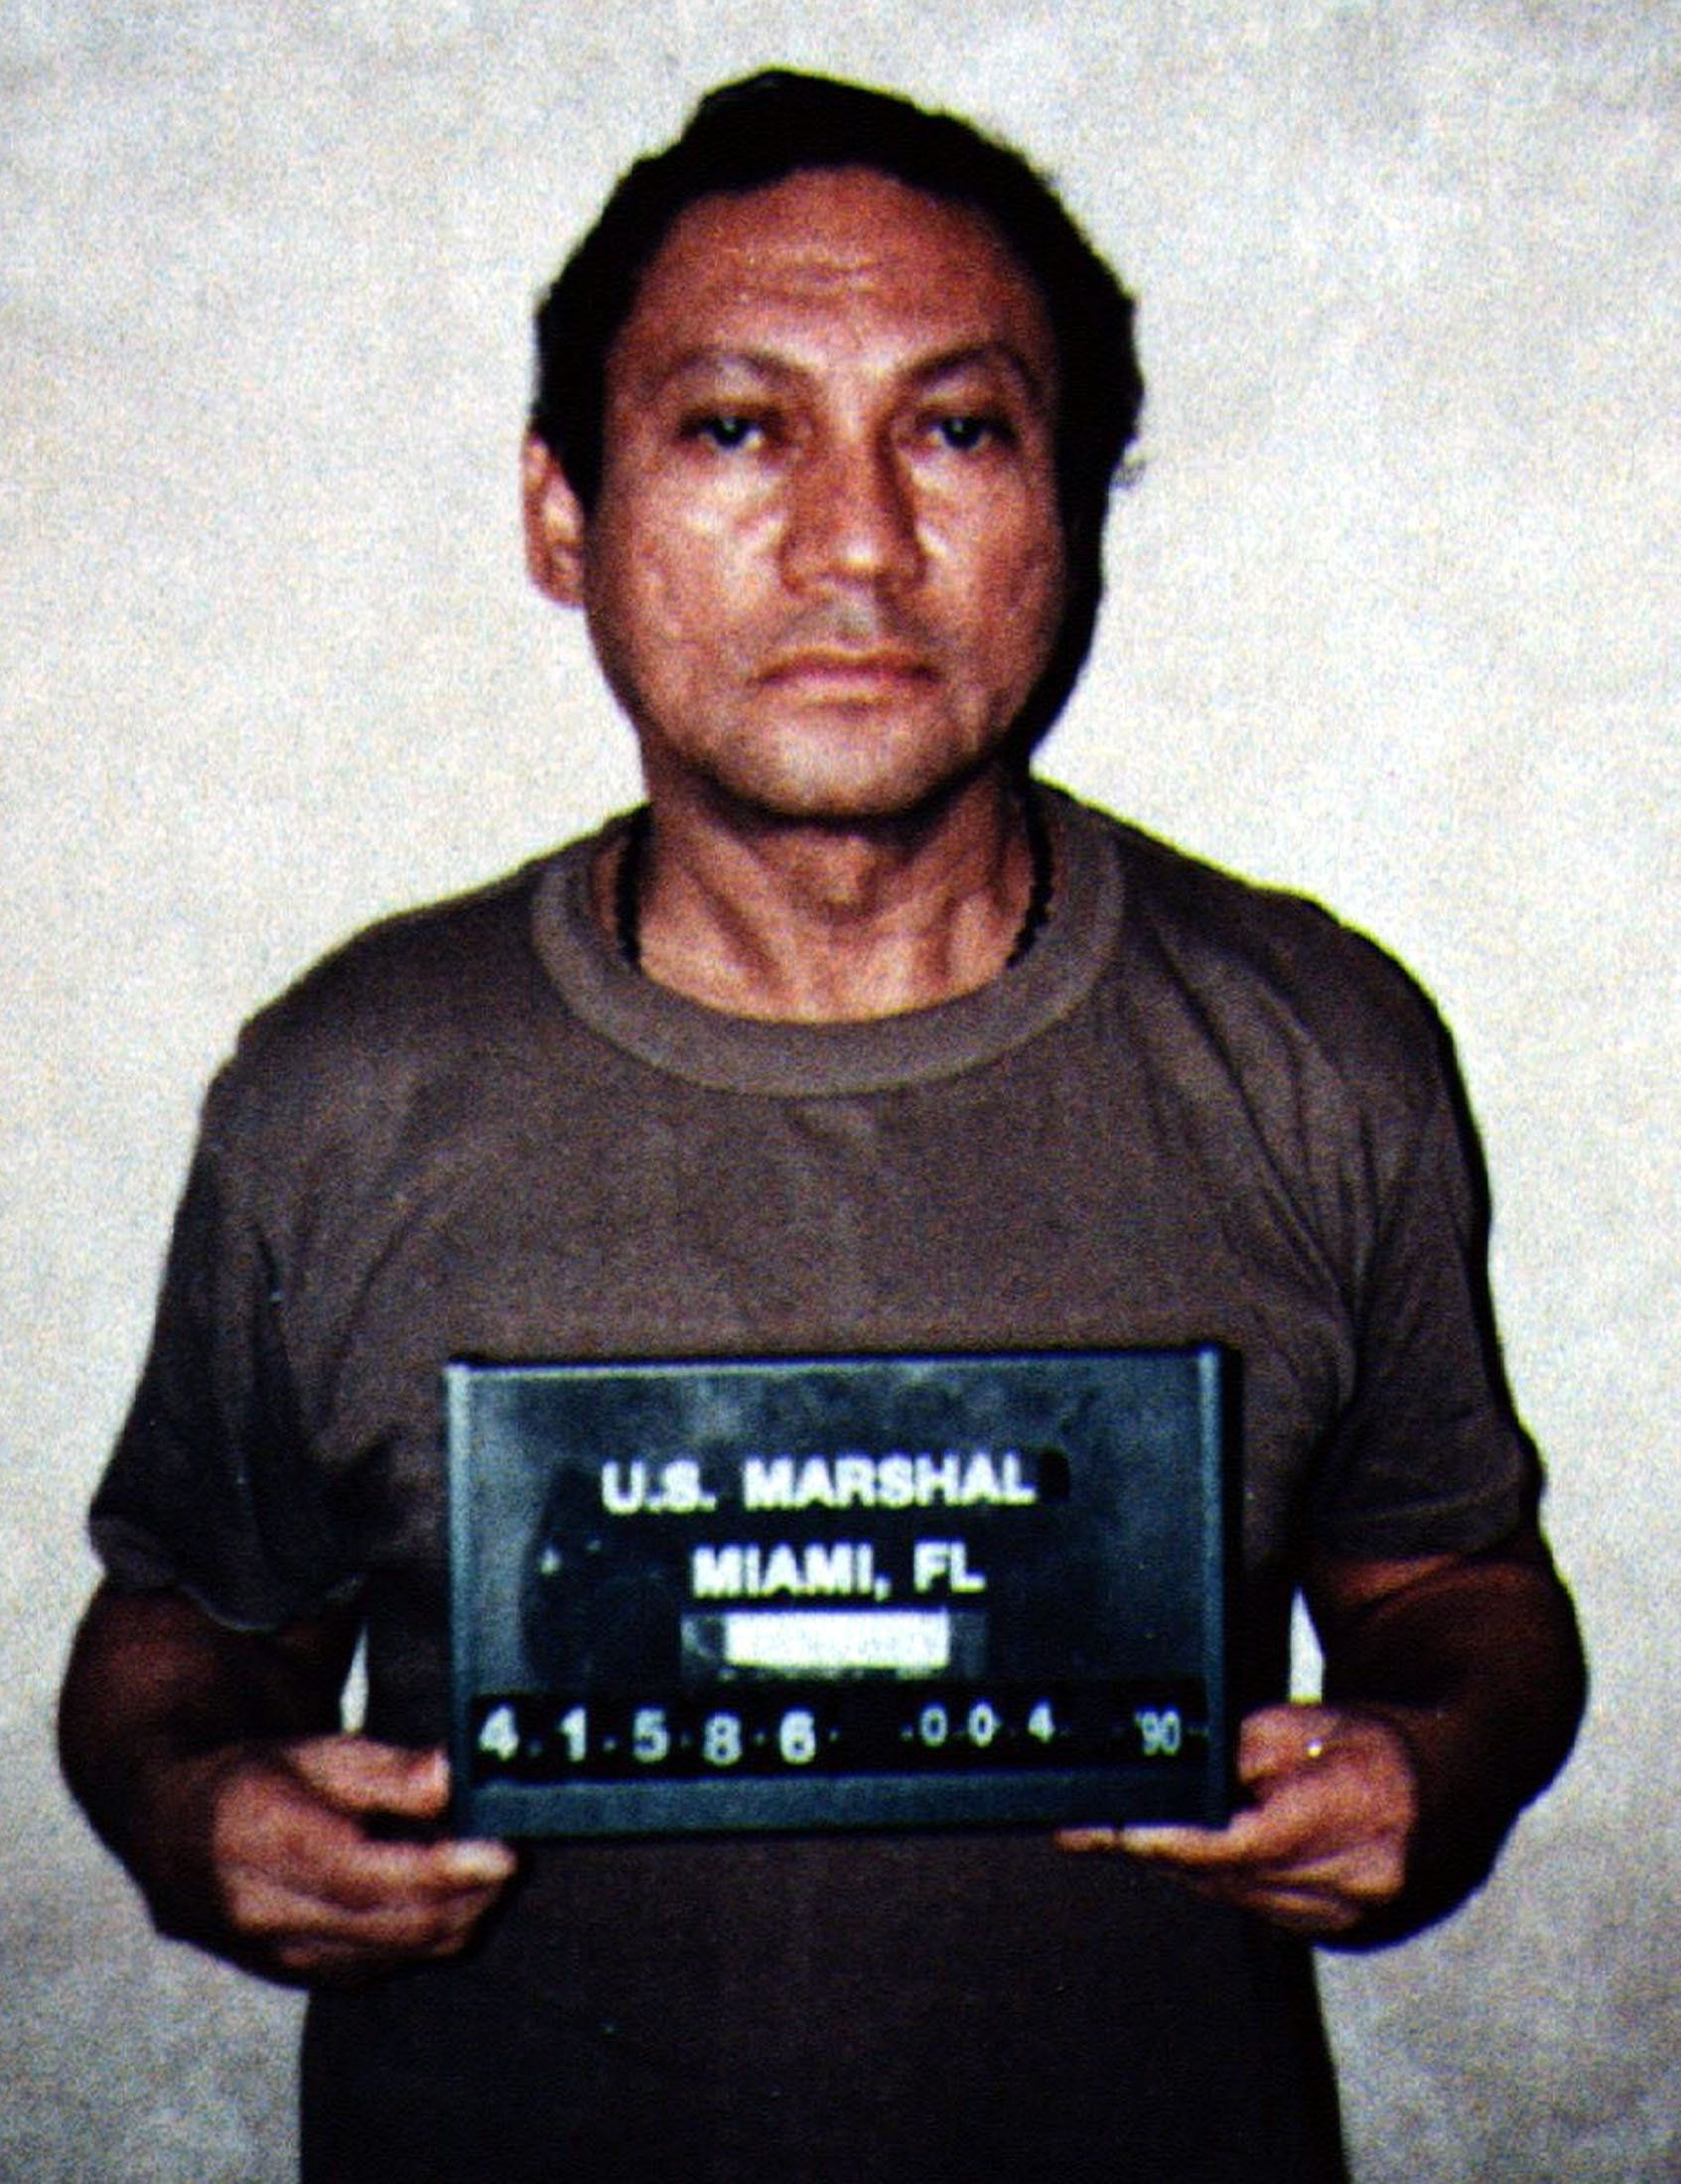 Former Panamanian strongman Manuel Noriega, pictured in this January 4, 1990 file photo, suffered a mild stroke in a U.S. prison but is in stable condition in a hospital, his attorney told CNN December 4, 2004. Miami attorney Frank Rubino told the cable news network Noriega had been taken to a Miami area hospital three days ago and although he felt tired and weak, no neurological damage had been detected, according to CNN's Web site. Rubino was out of the country and could not be reached, his secretary told Reuters. She added that staff at Rubino's high-profile Miami law firm had been told on Friday evening that Noriega had simply gone for a routine medical check-up. Noriega is shown in this file photo taken during his arrest by U.S. Drug Enforcement Agency agents in 1990. REUTERS/HO  JDP